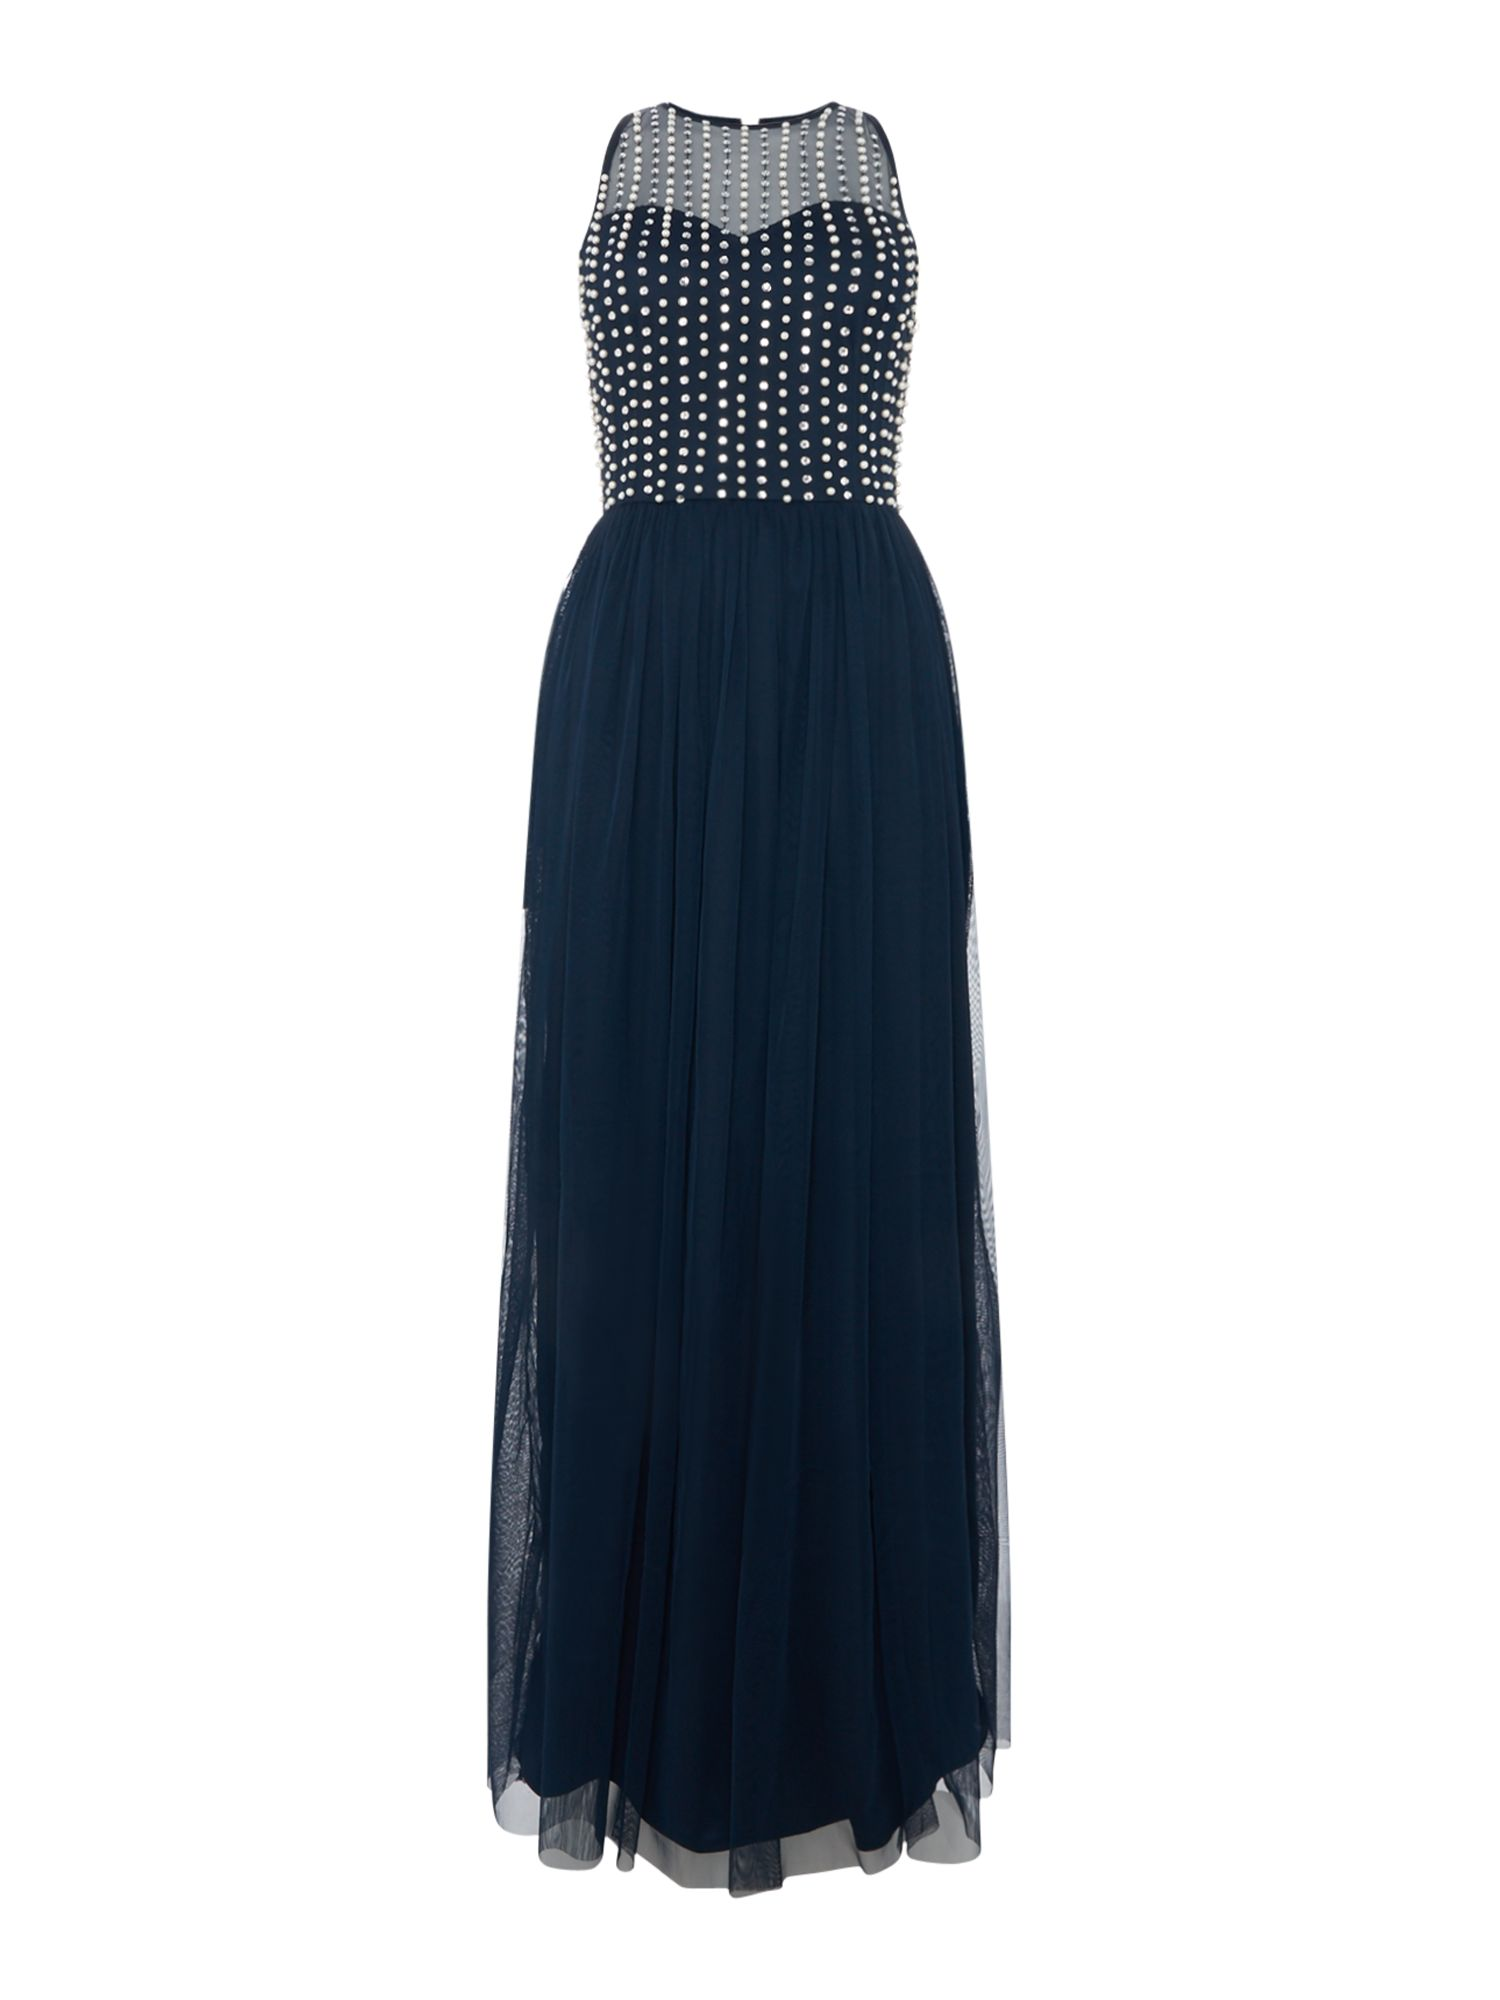 Lace and Beads Mesh embellished maxi dress, Blue